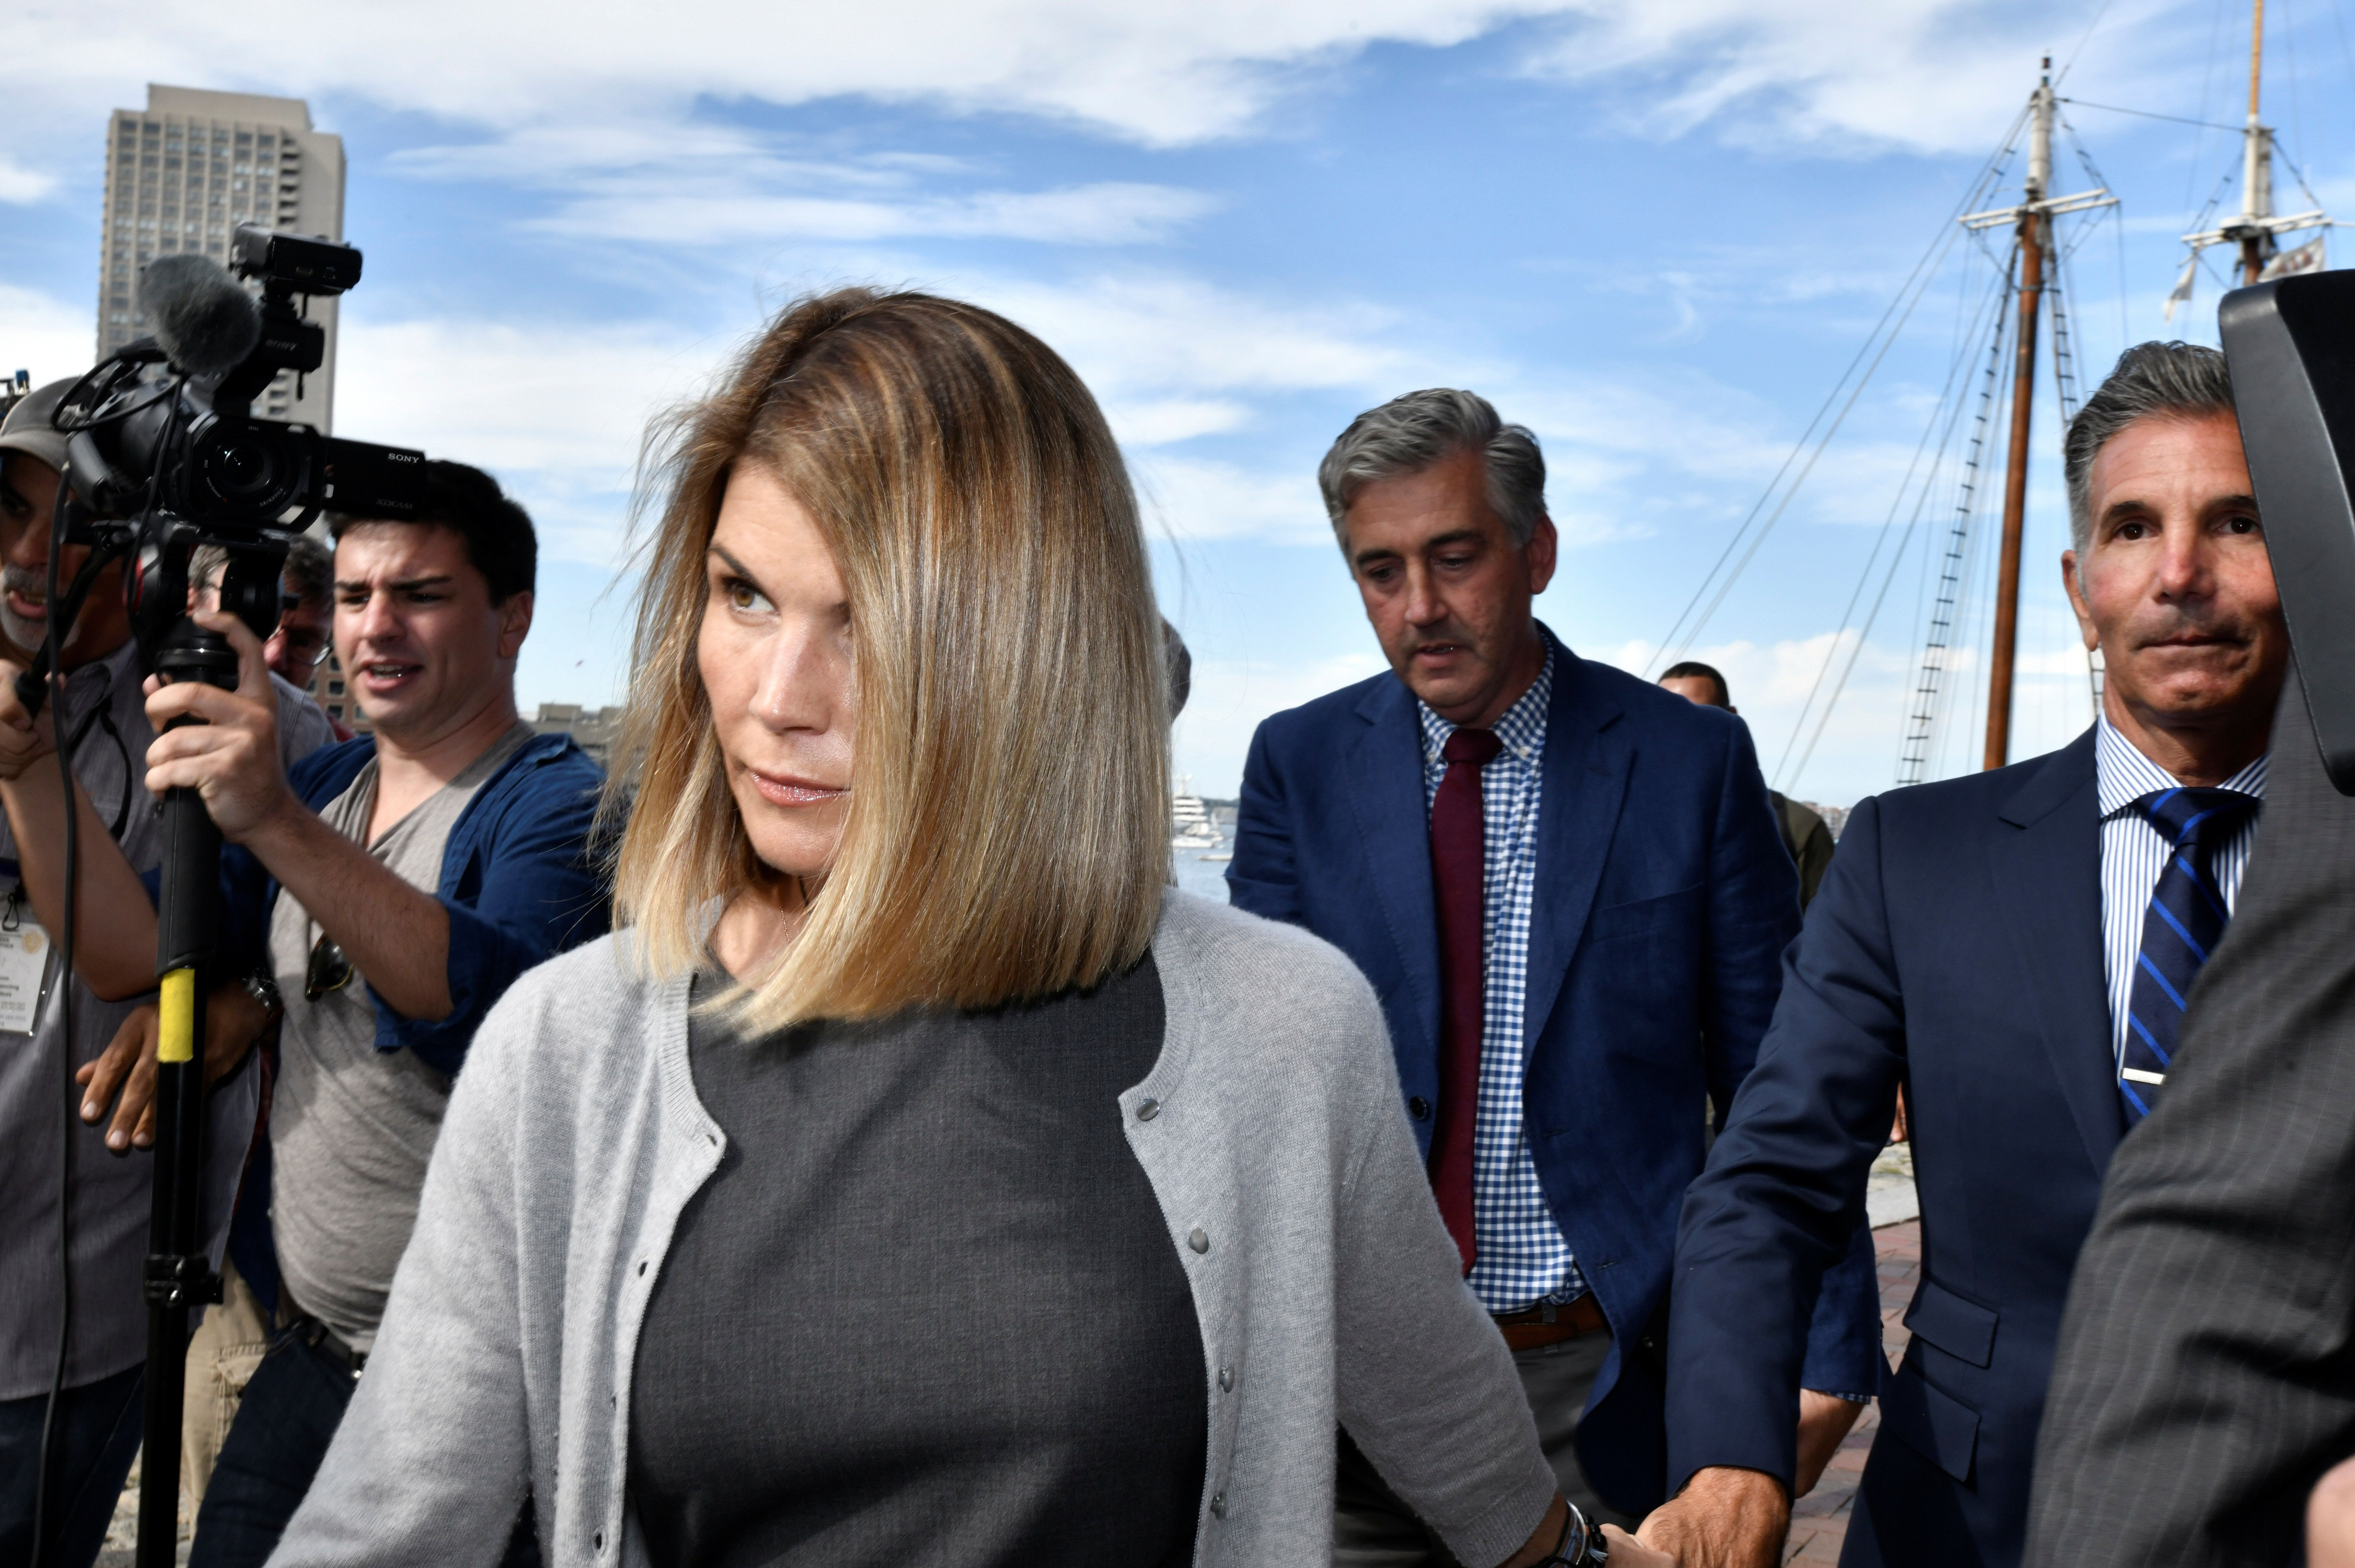 Actress Lori Loughlin, and her husband, fashion designer Mossimo Giannulli leave the federal courthouse after a hearing on ch